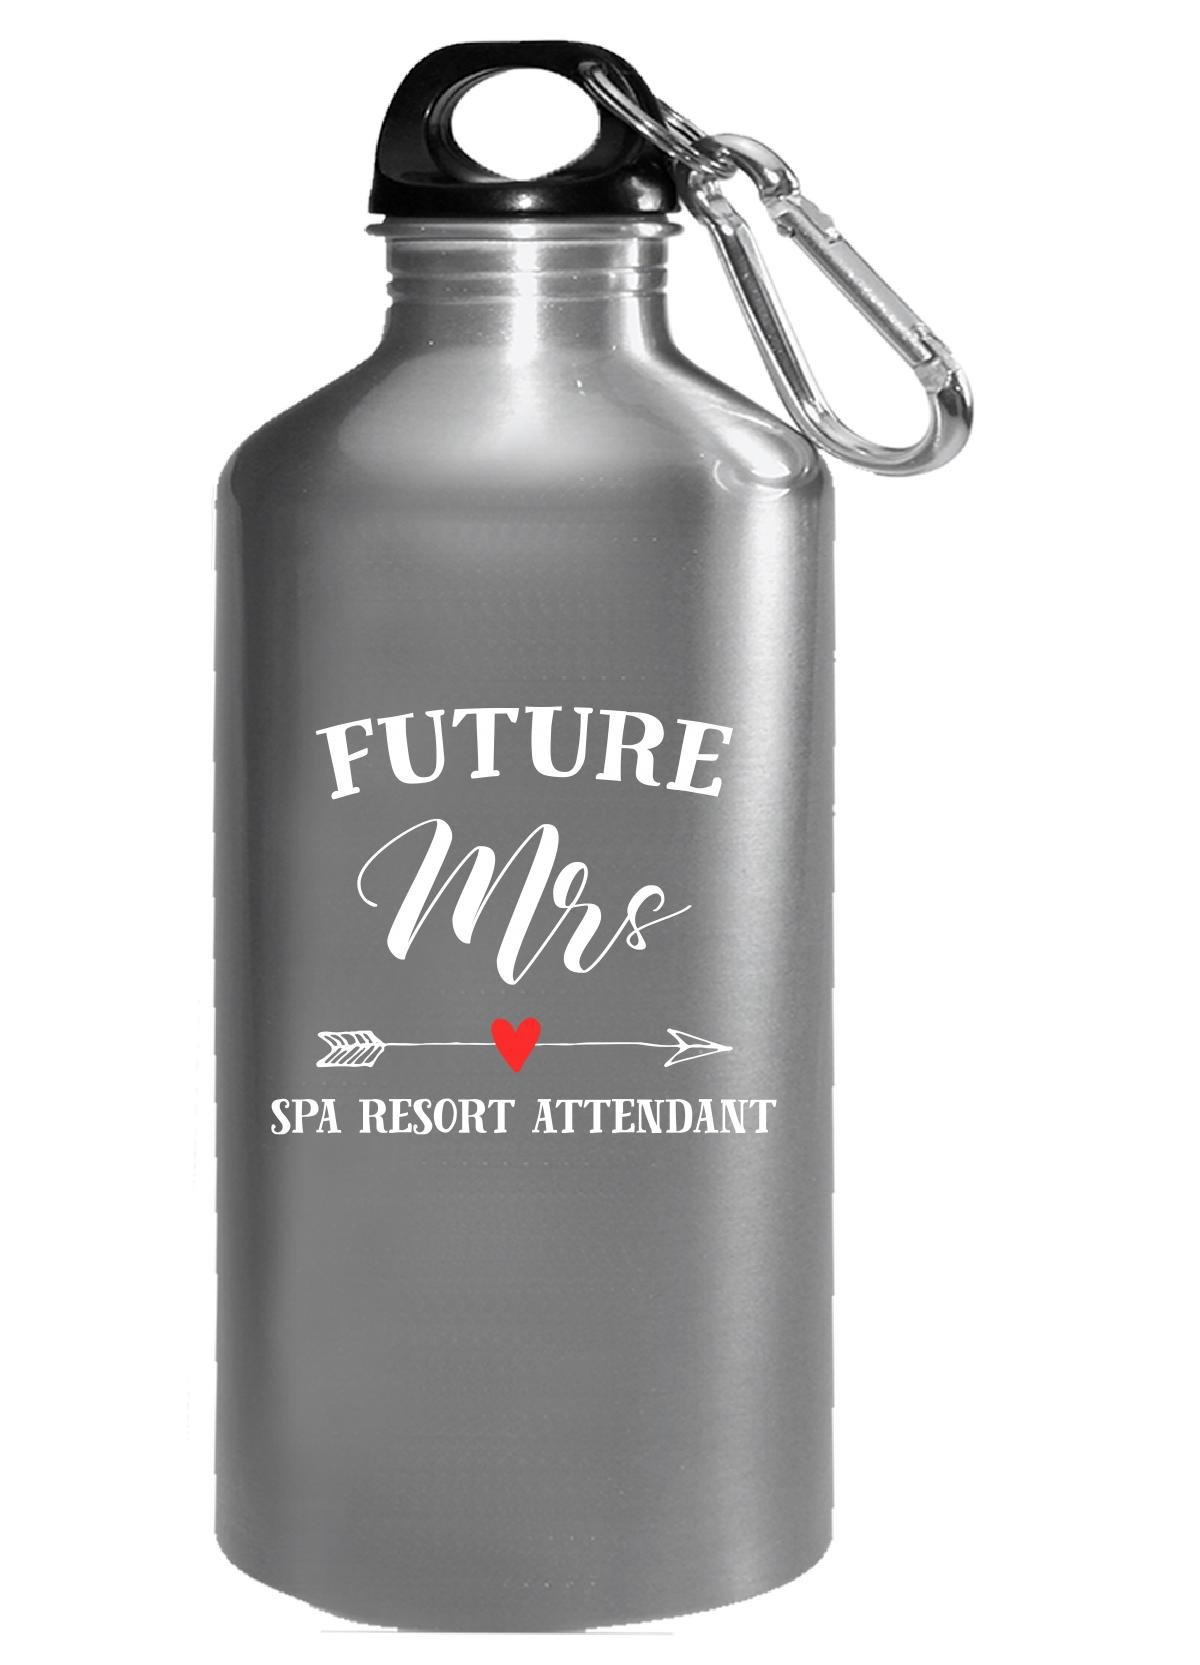 Future Mrs Spa Resort Attendant Womens Bridal Gift - Water Bottle